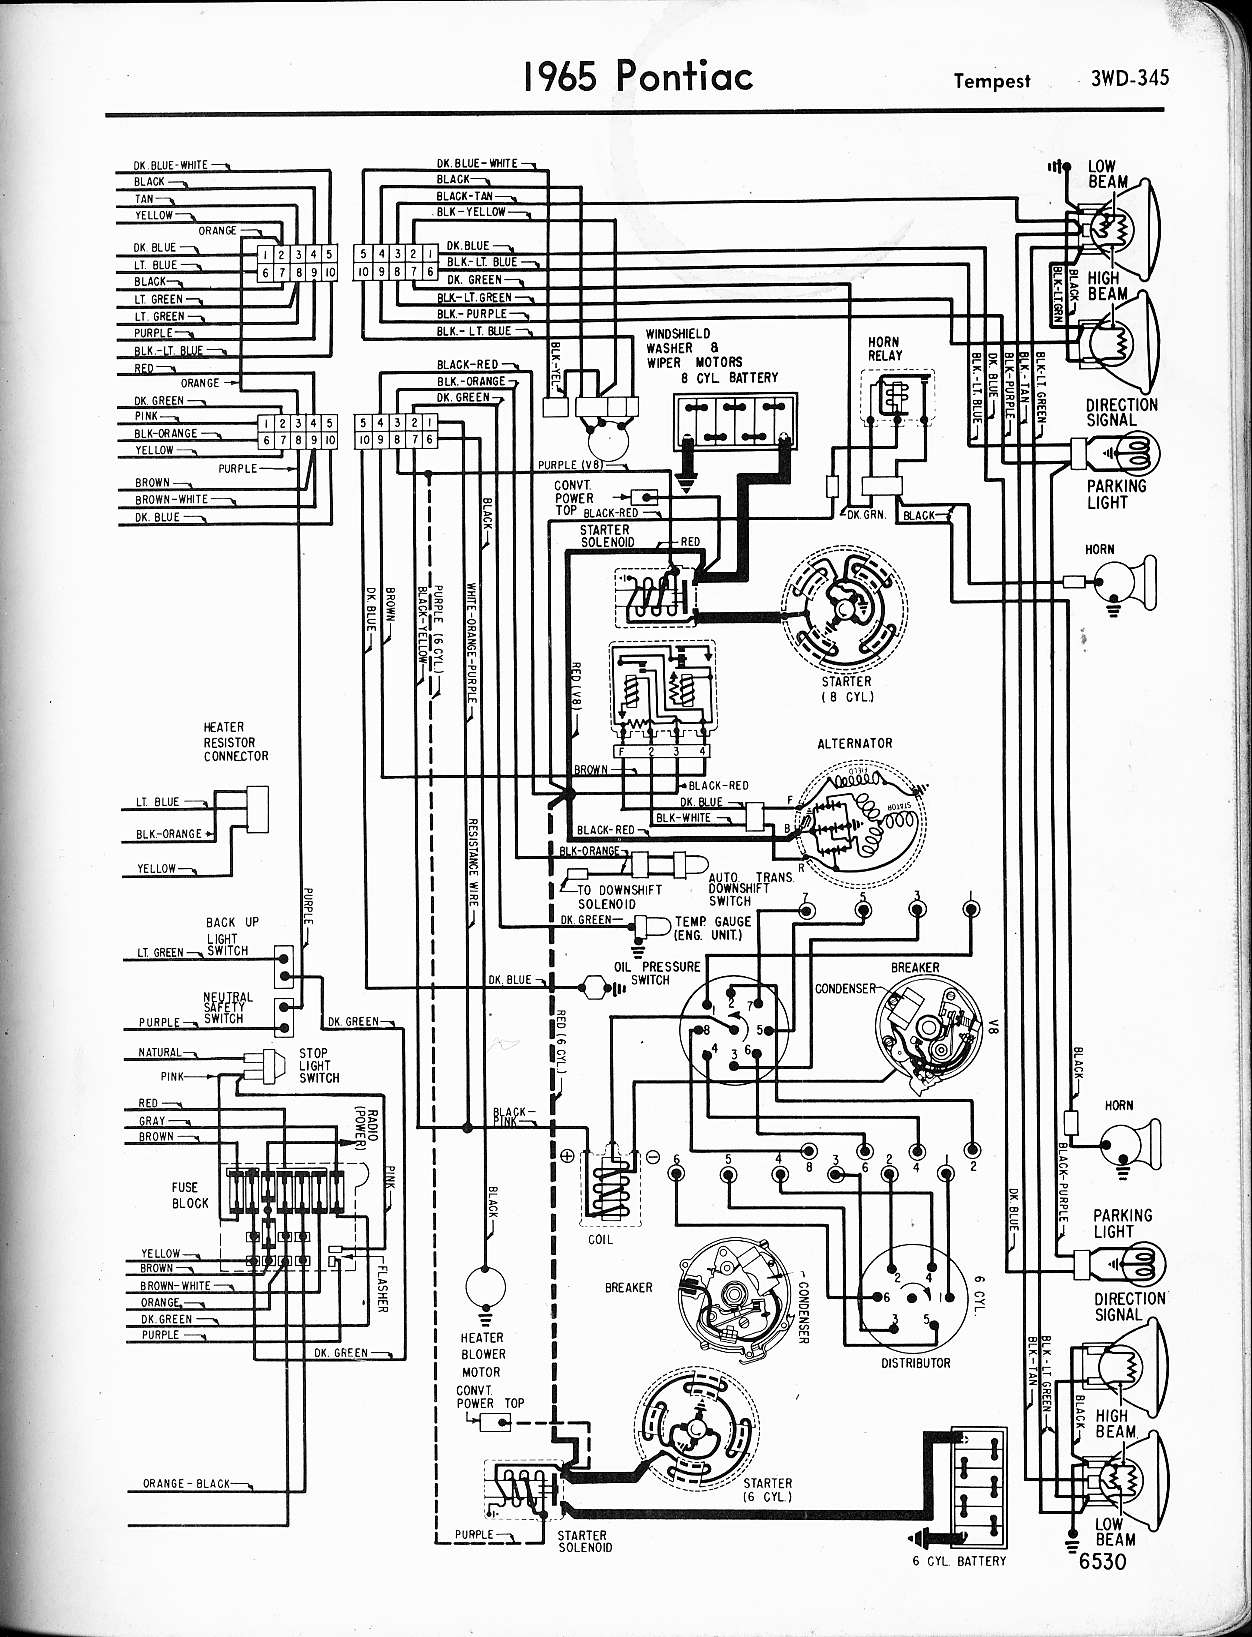 MWire5765 345 1967 gto wiring diagram 1967 gto fuse box wiring diagram \u2022 free 1967 gto fuse box at mifinder.co